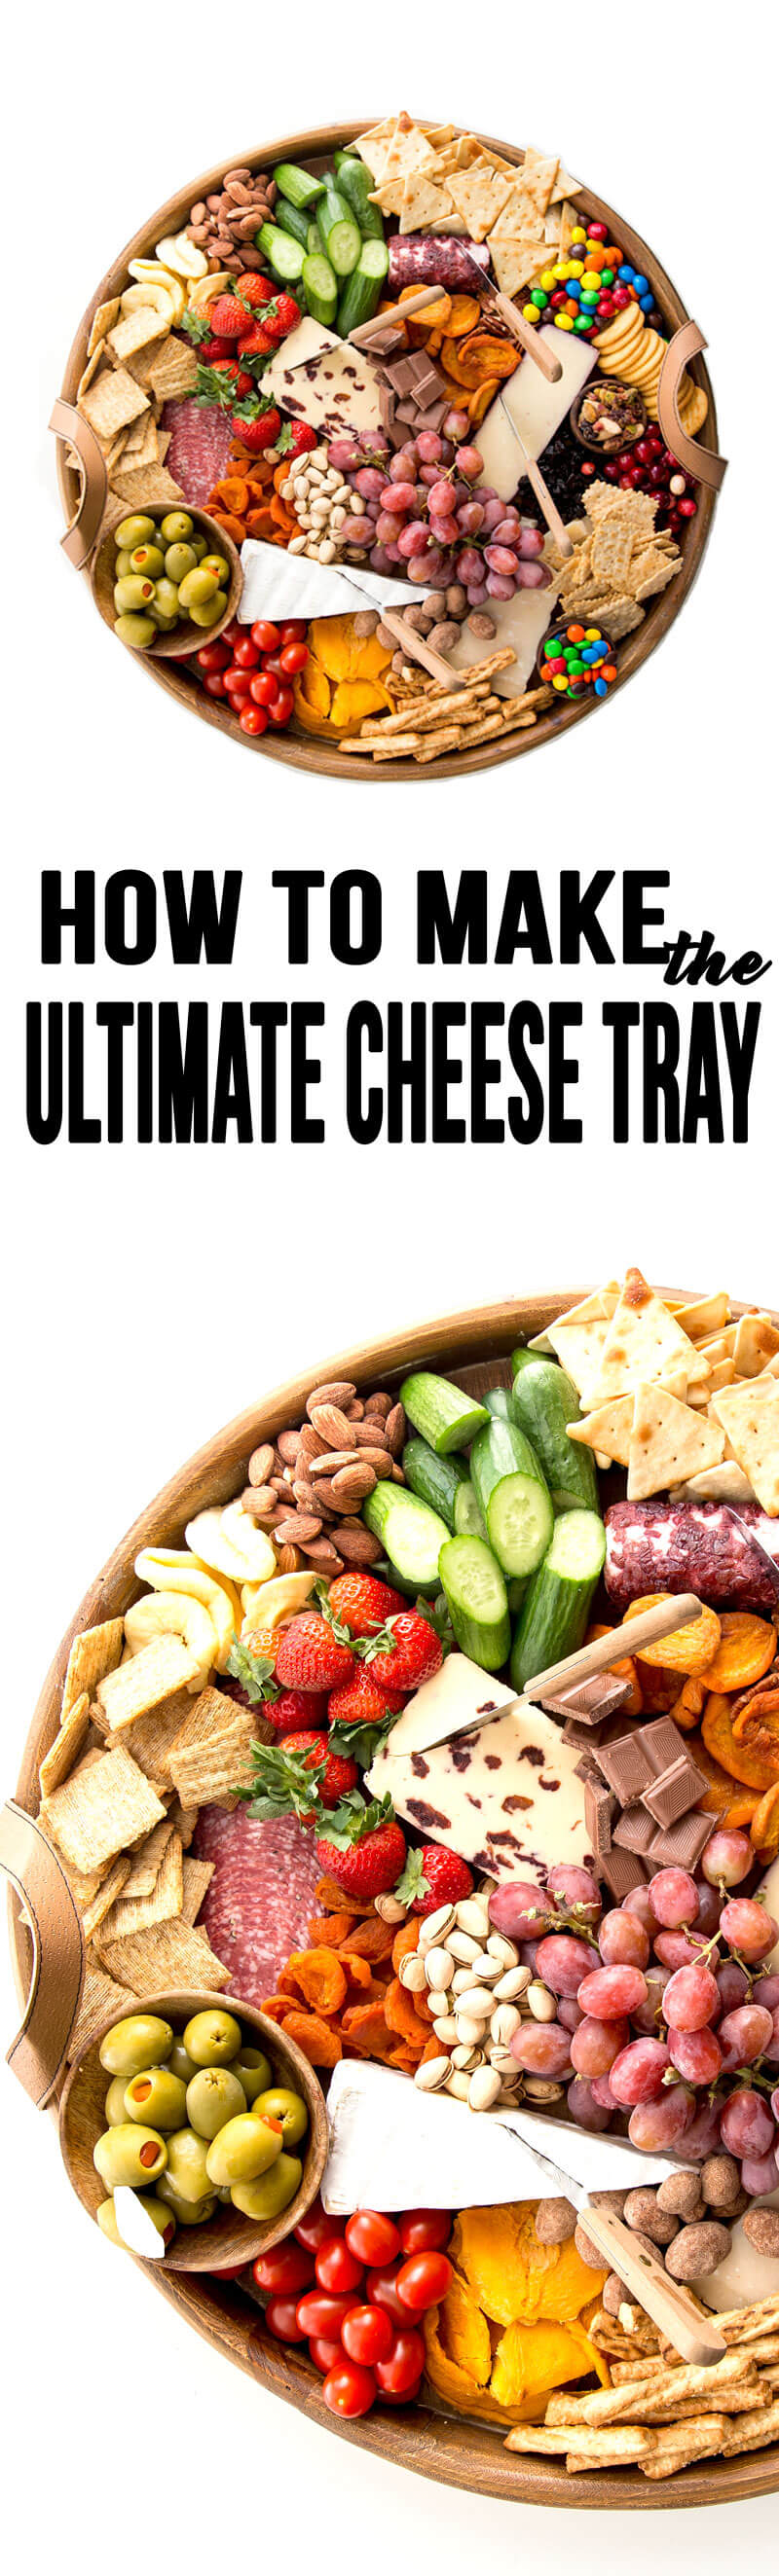 How to make the ultimate cheese tray for a party appetizer!